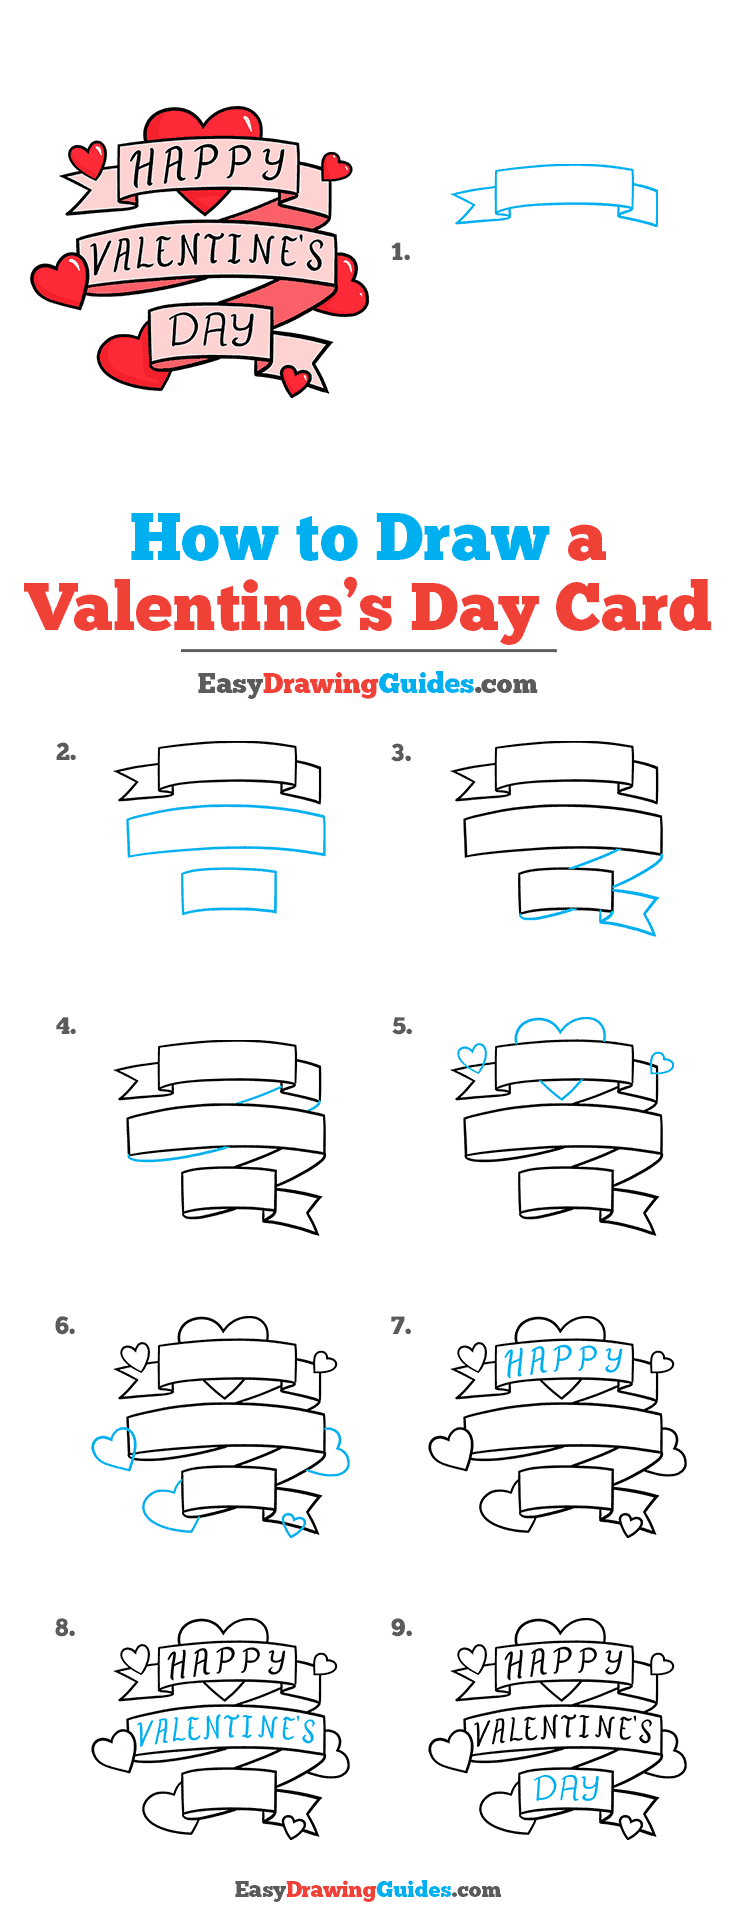 How to Draw a Valentine's Day Card Step by Step Tutorial Image